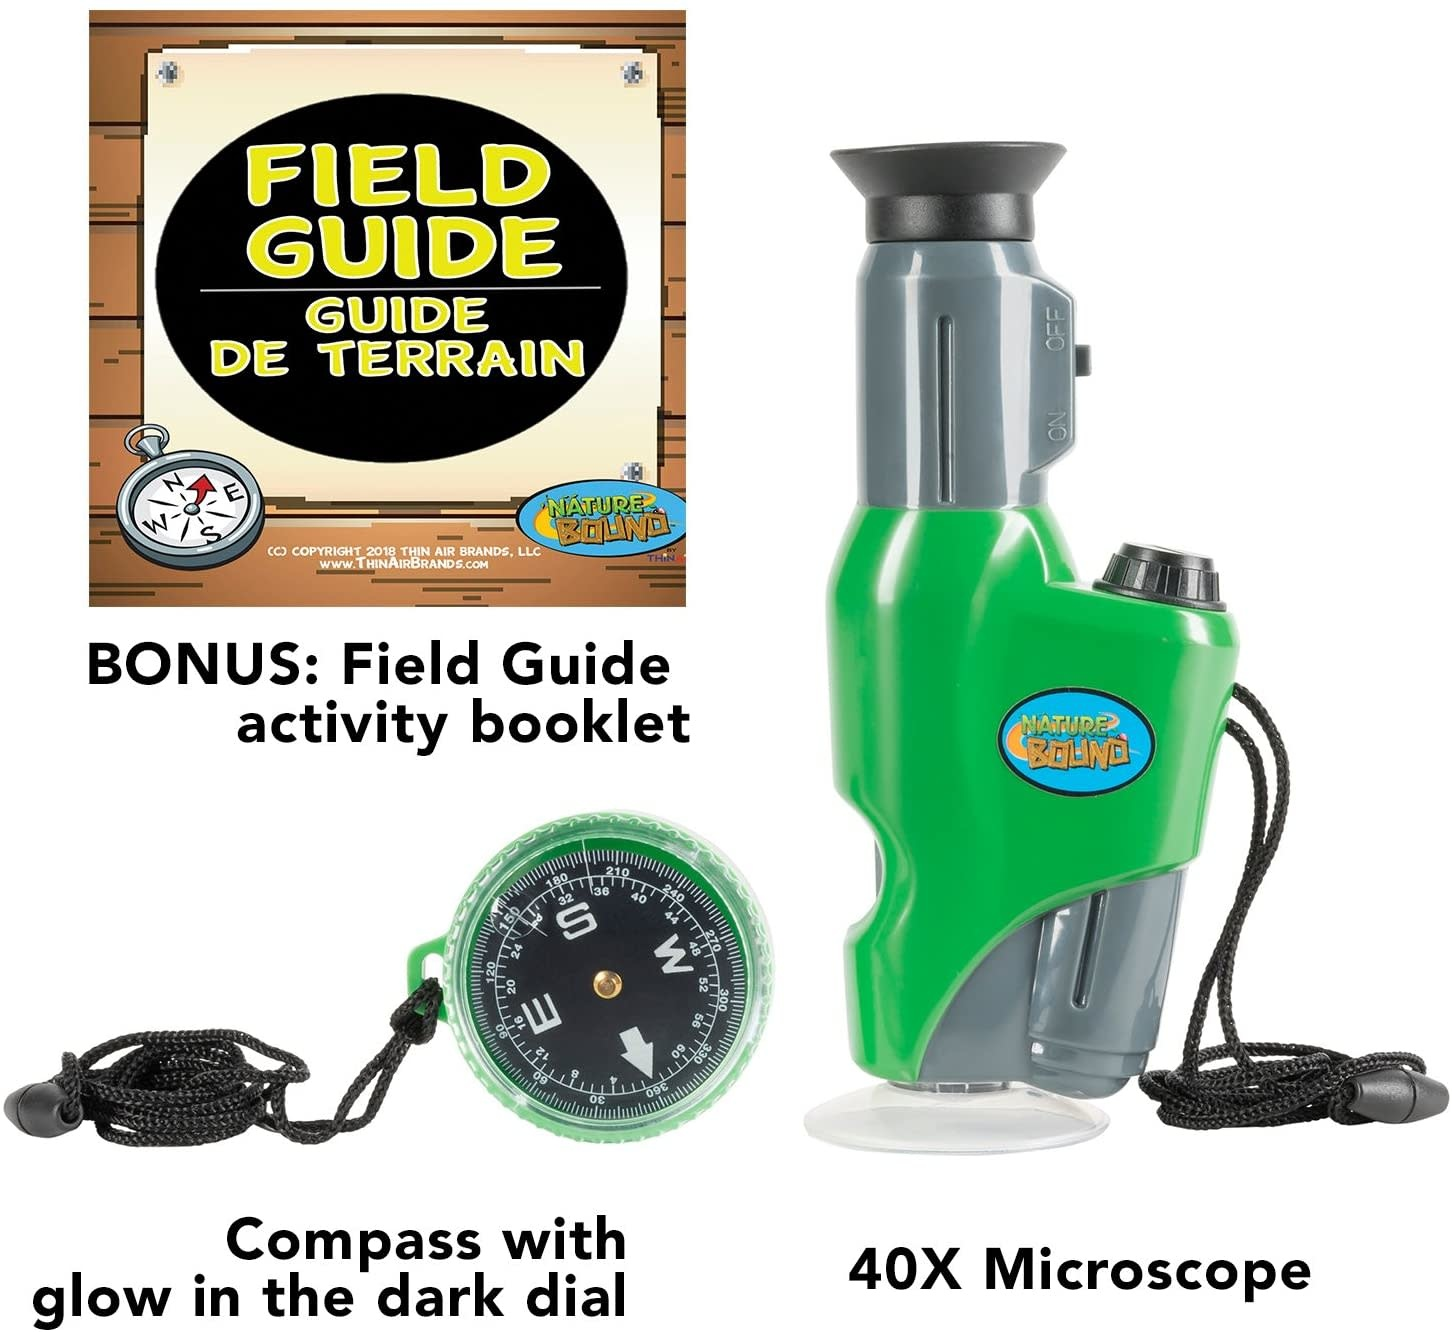 Field Scope w/ Compass by Nature Bound